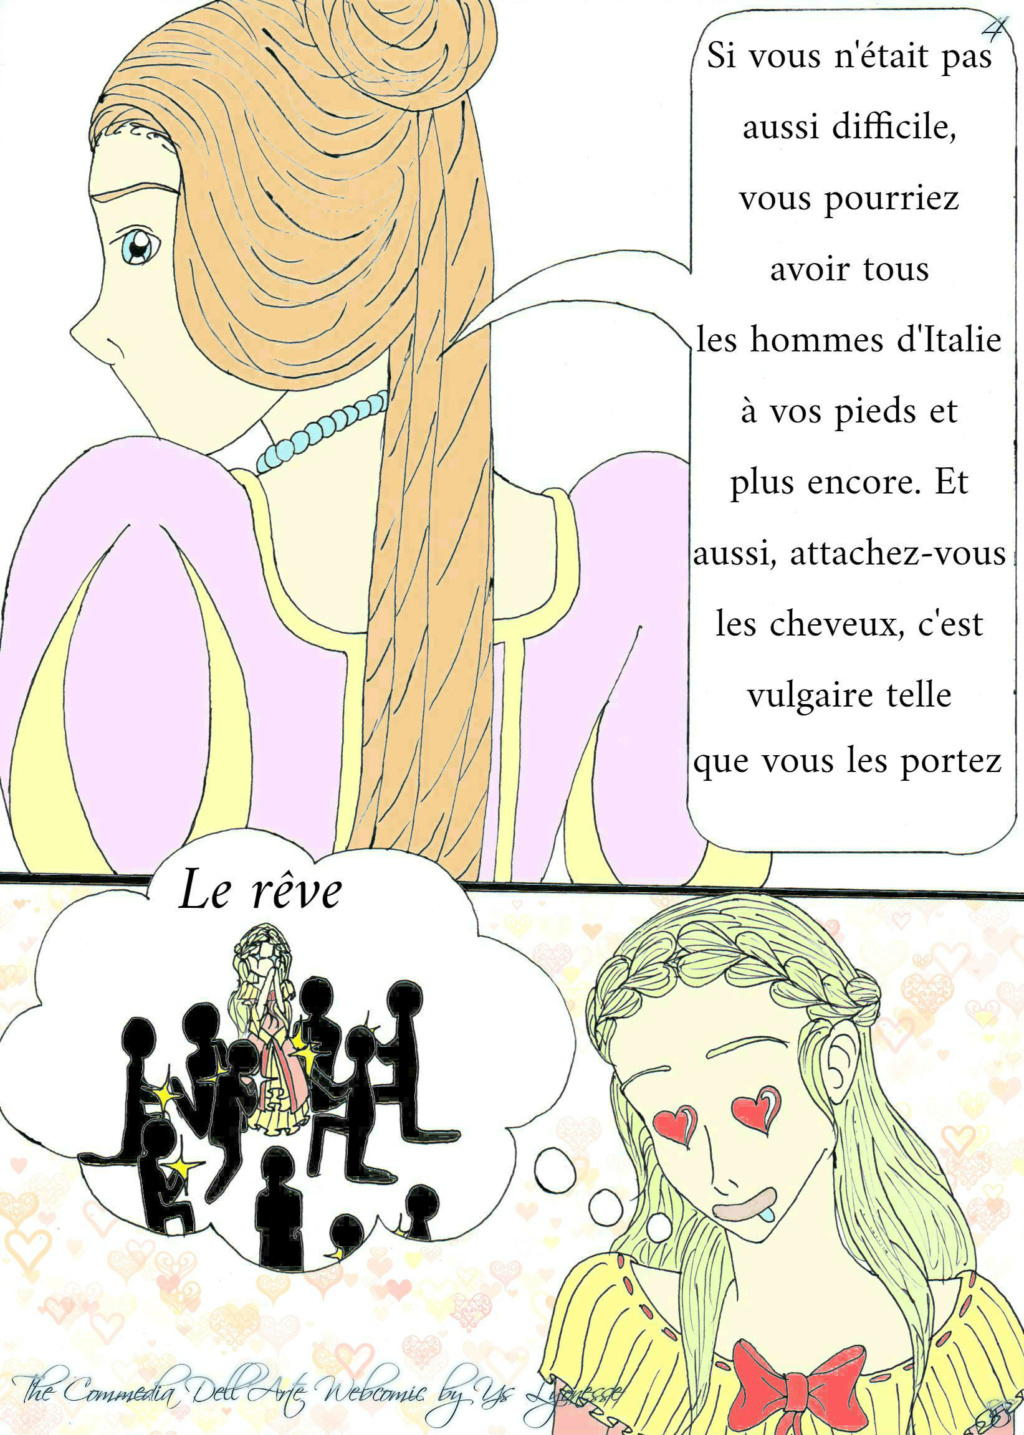 The Commedia Dell'Arte Webcomic 811